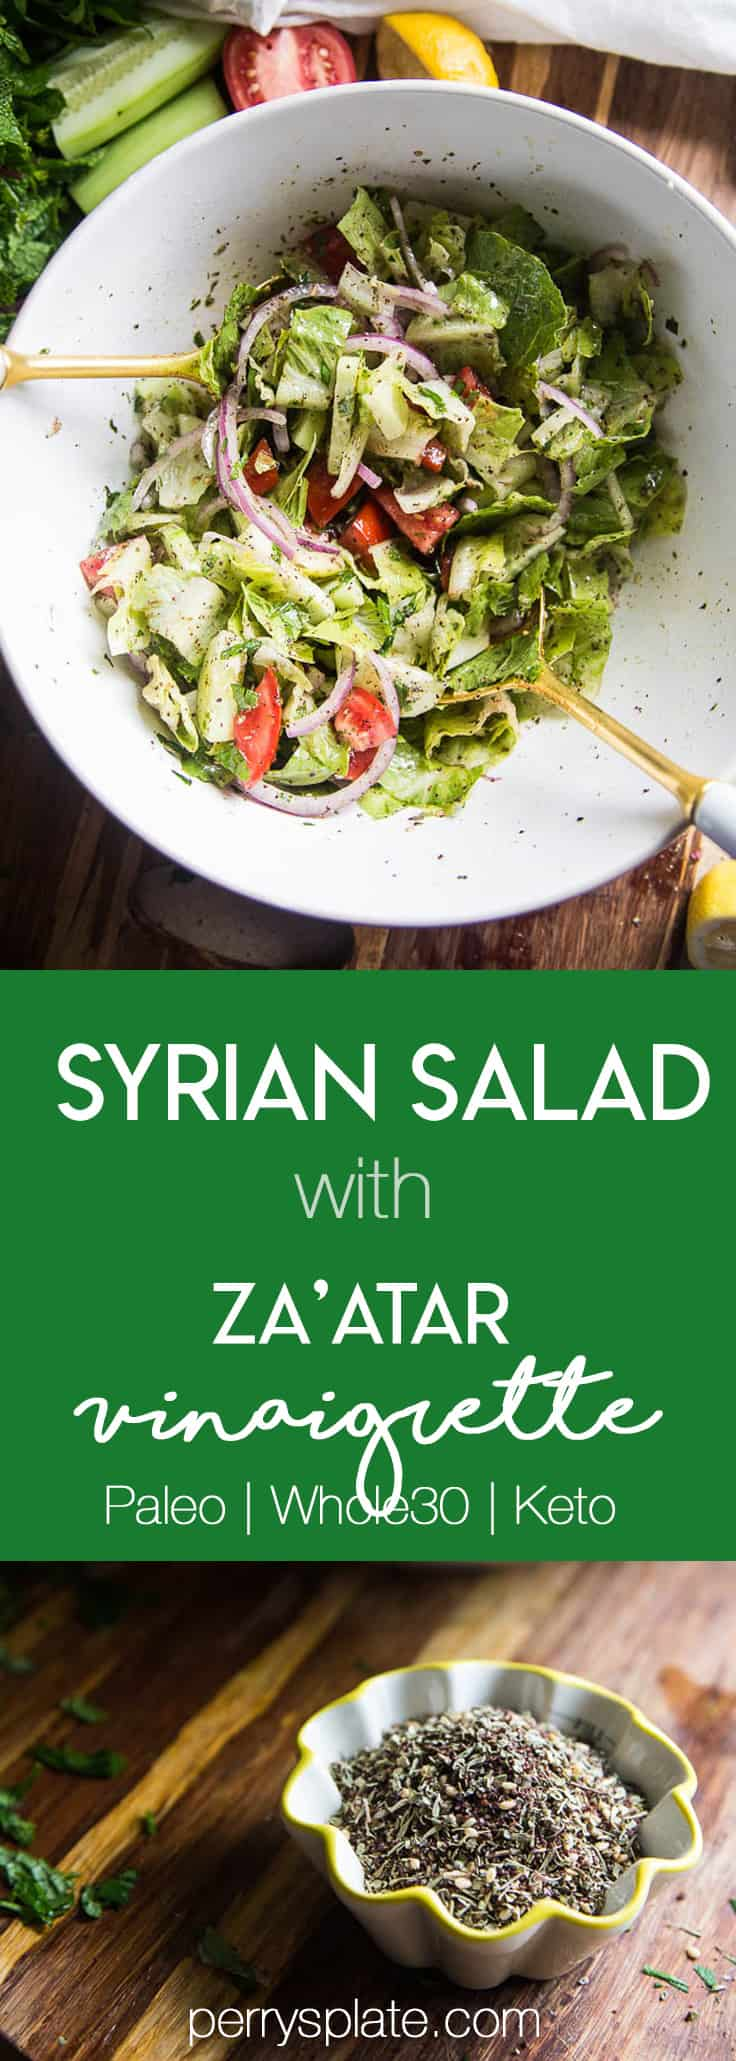 Syrian Salad with Za'atar Vinaigrette | Food from Our Ancestors | paleo recipes | Whole30 recipes | salad recipes | perrysplate.com